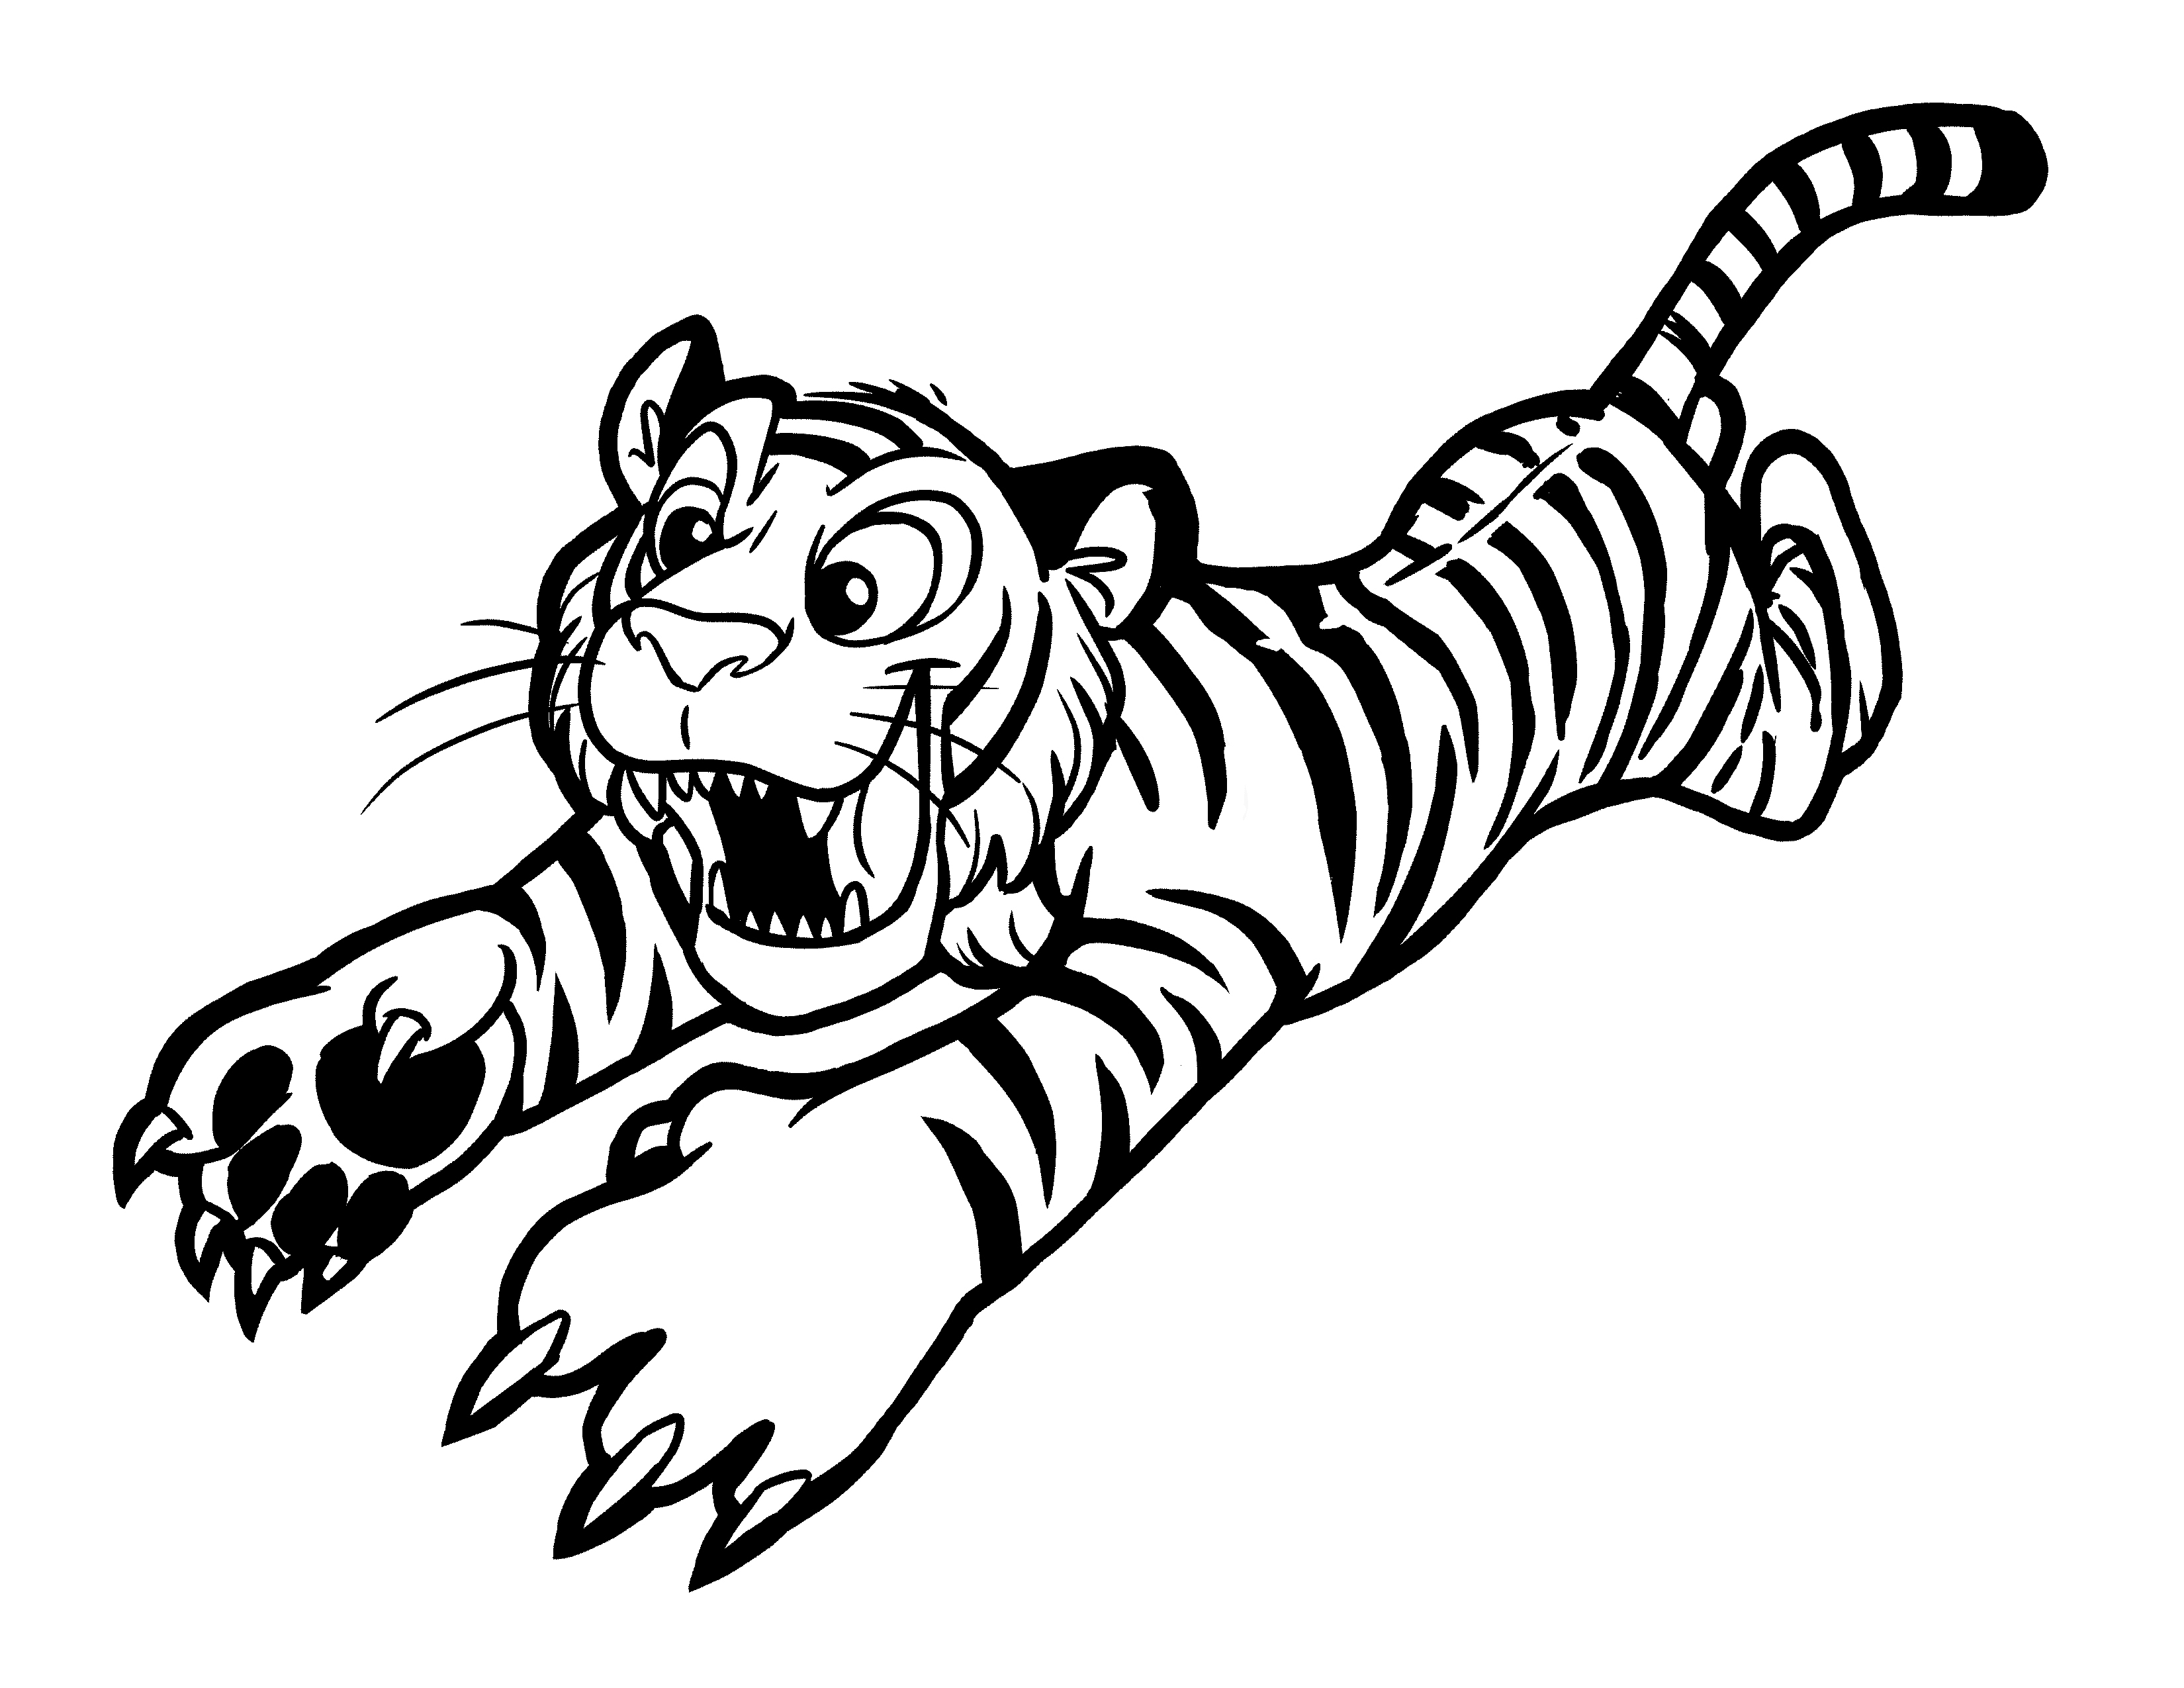 coloring page of tiger free tiger coloring pages coloring tiger of page